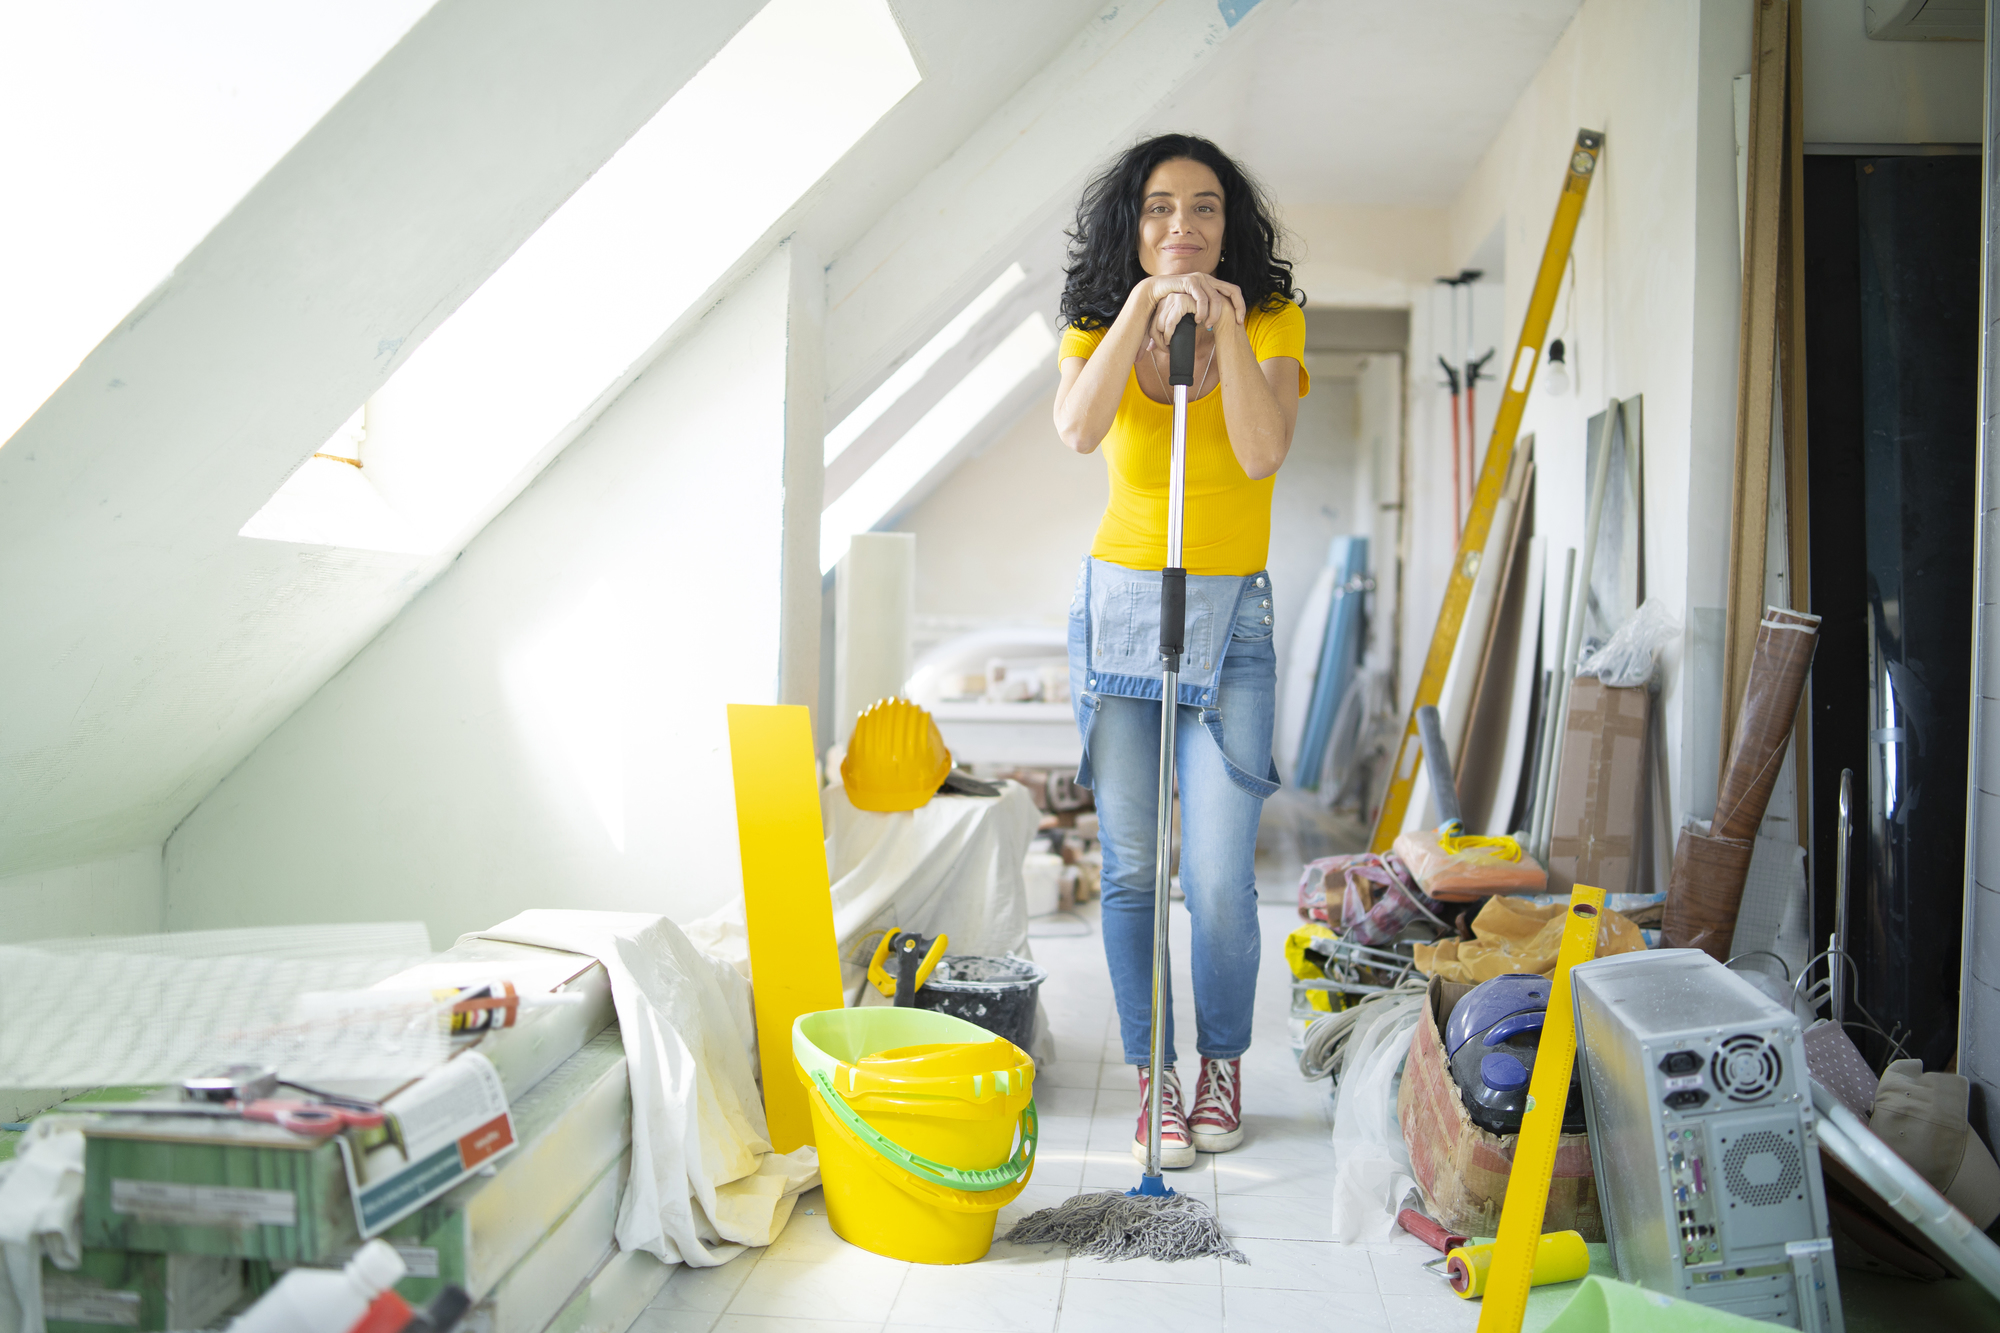 Woman cleaning an indoor space.